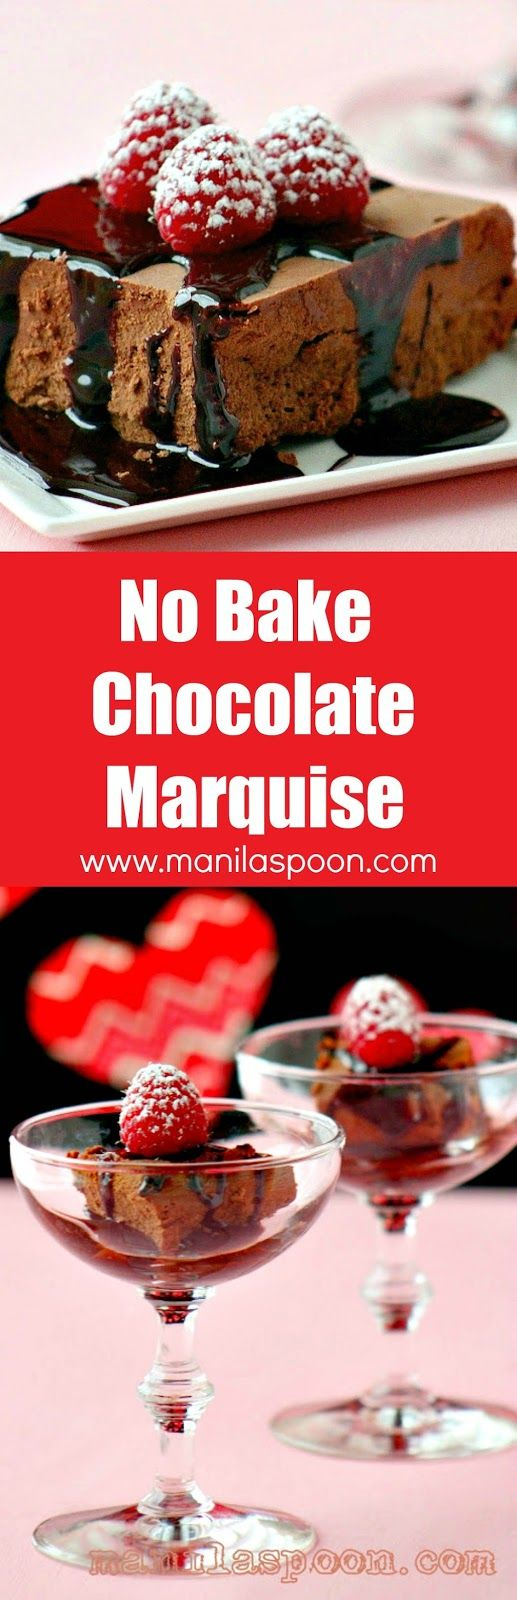 For the ultimate chocolate sweet treat - No Bake CHOCOLATE MARQUISE! Easy, yummy and perfect for the chocolate lover in you! | manilaspoon.com